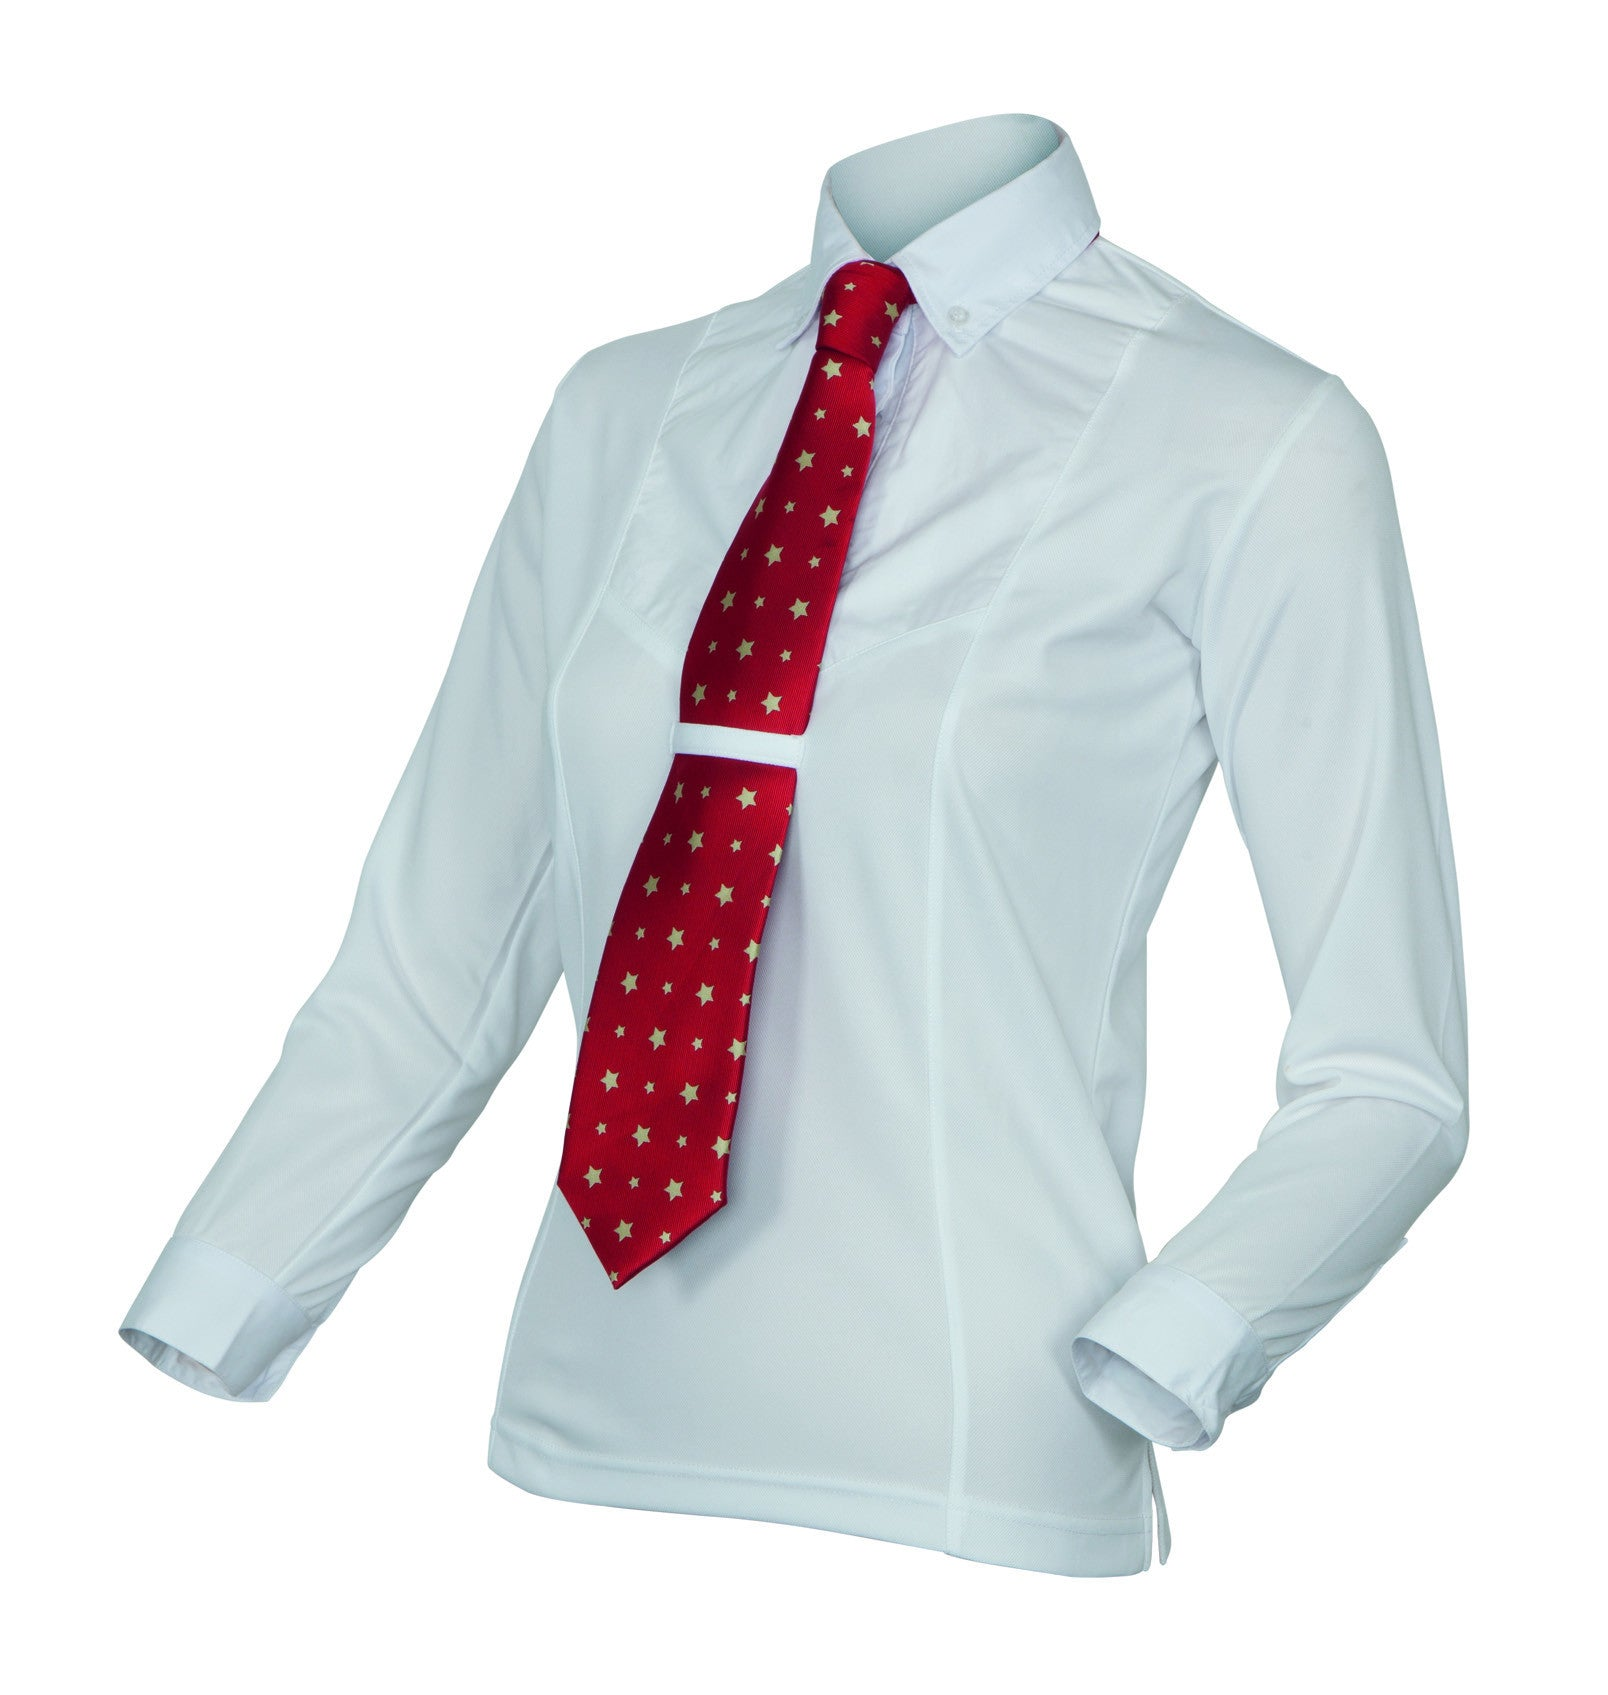 Shires Long Sleeve Tie Shirt - Children's